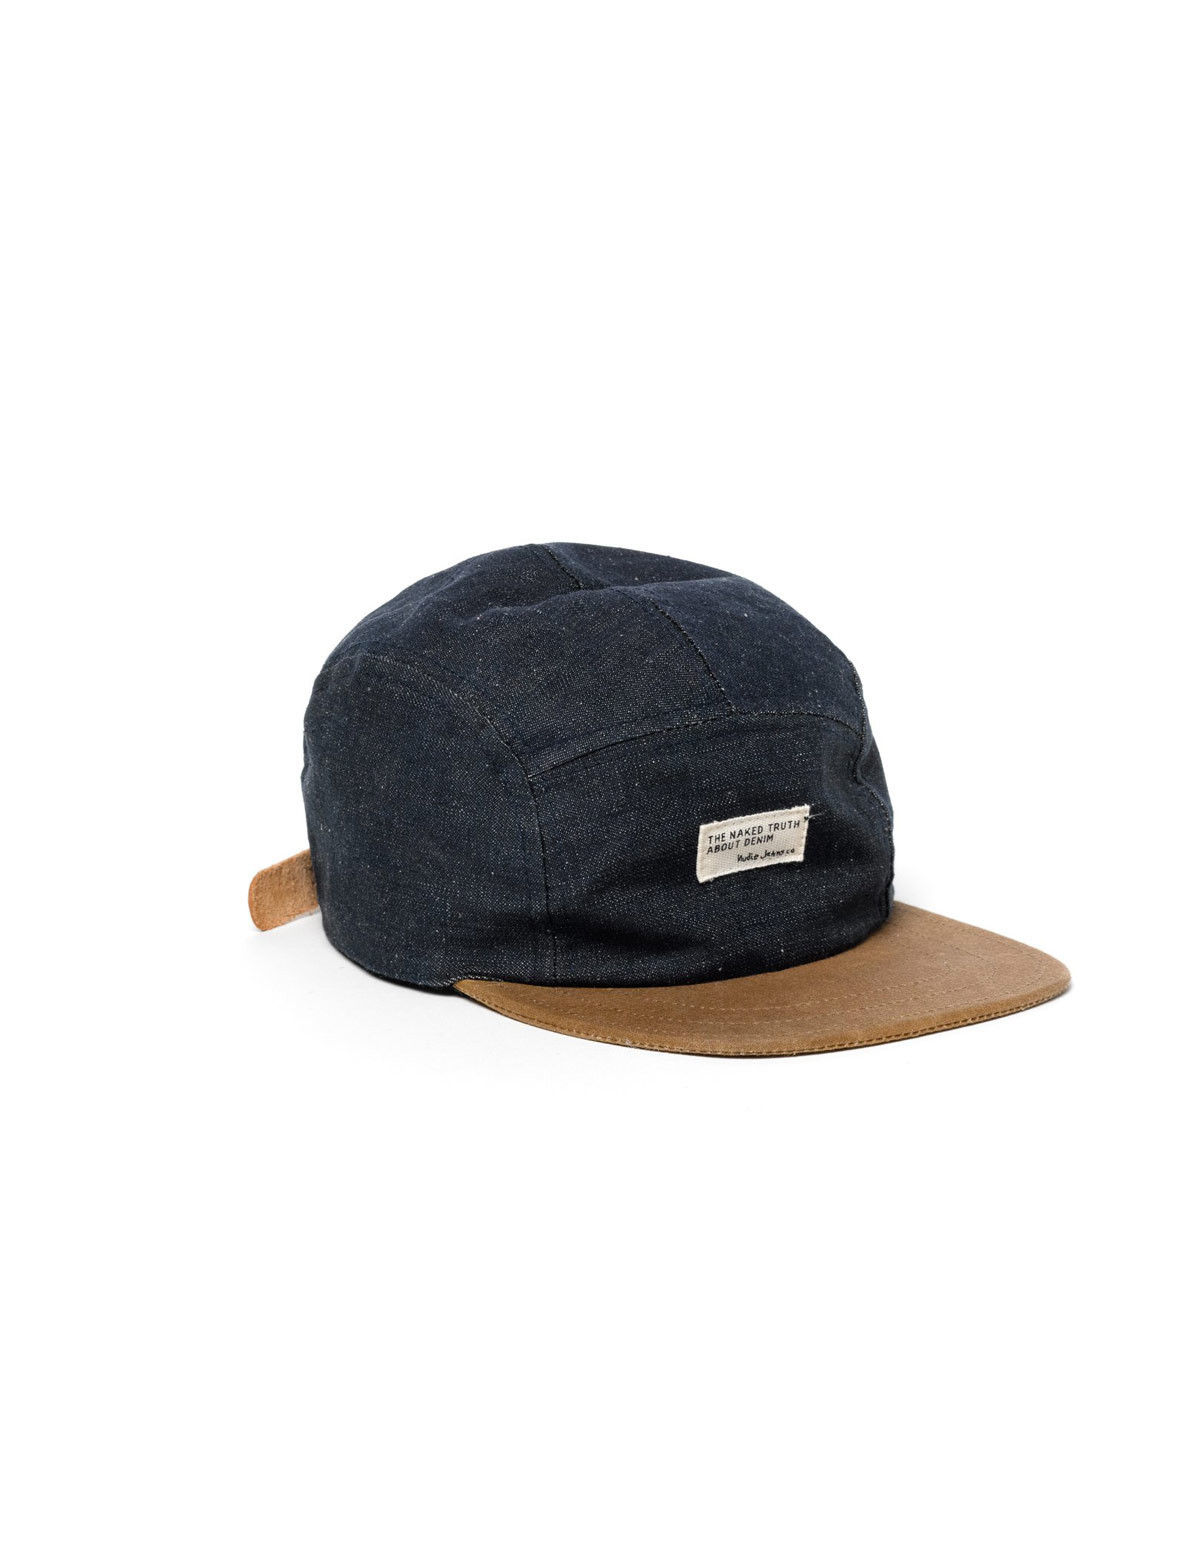 Nudie Monty Five Panel Organic Cap Denim Black  2eac97fa3f2